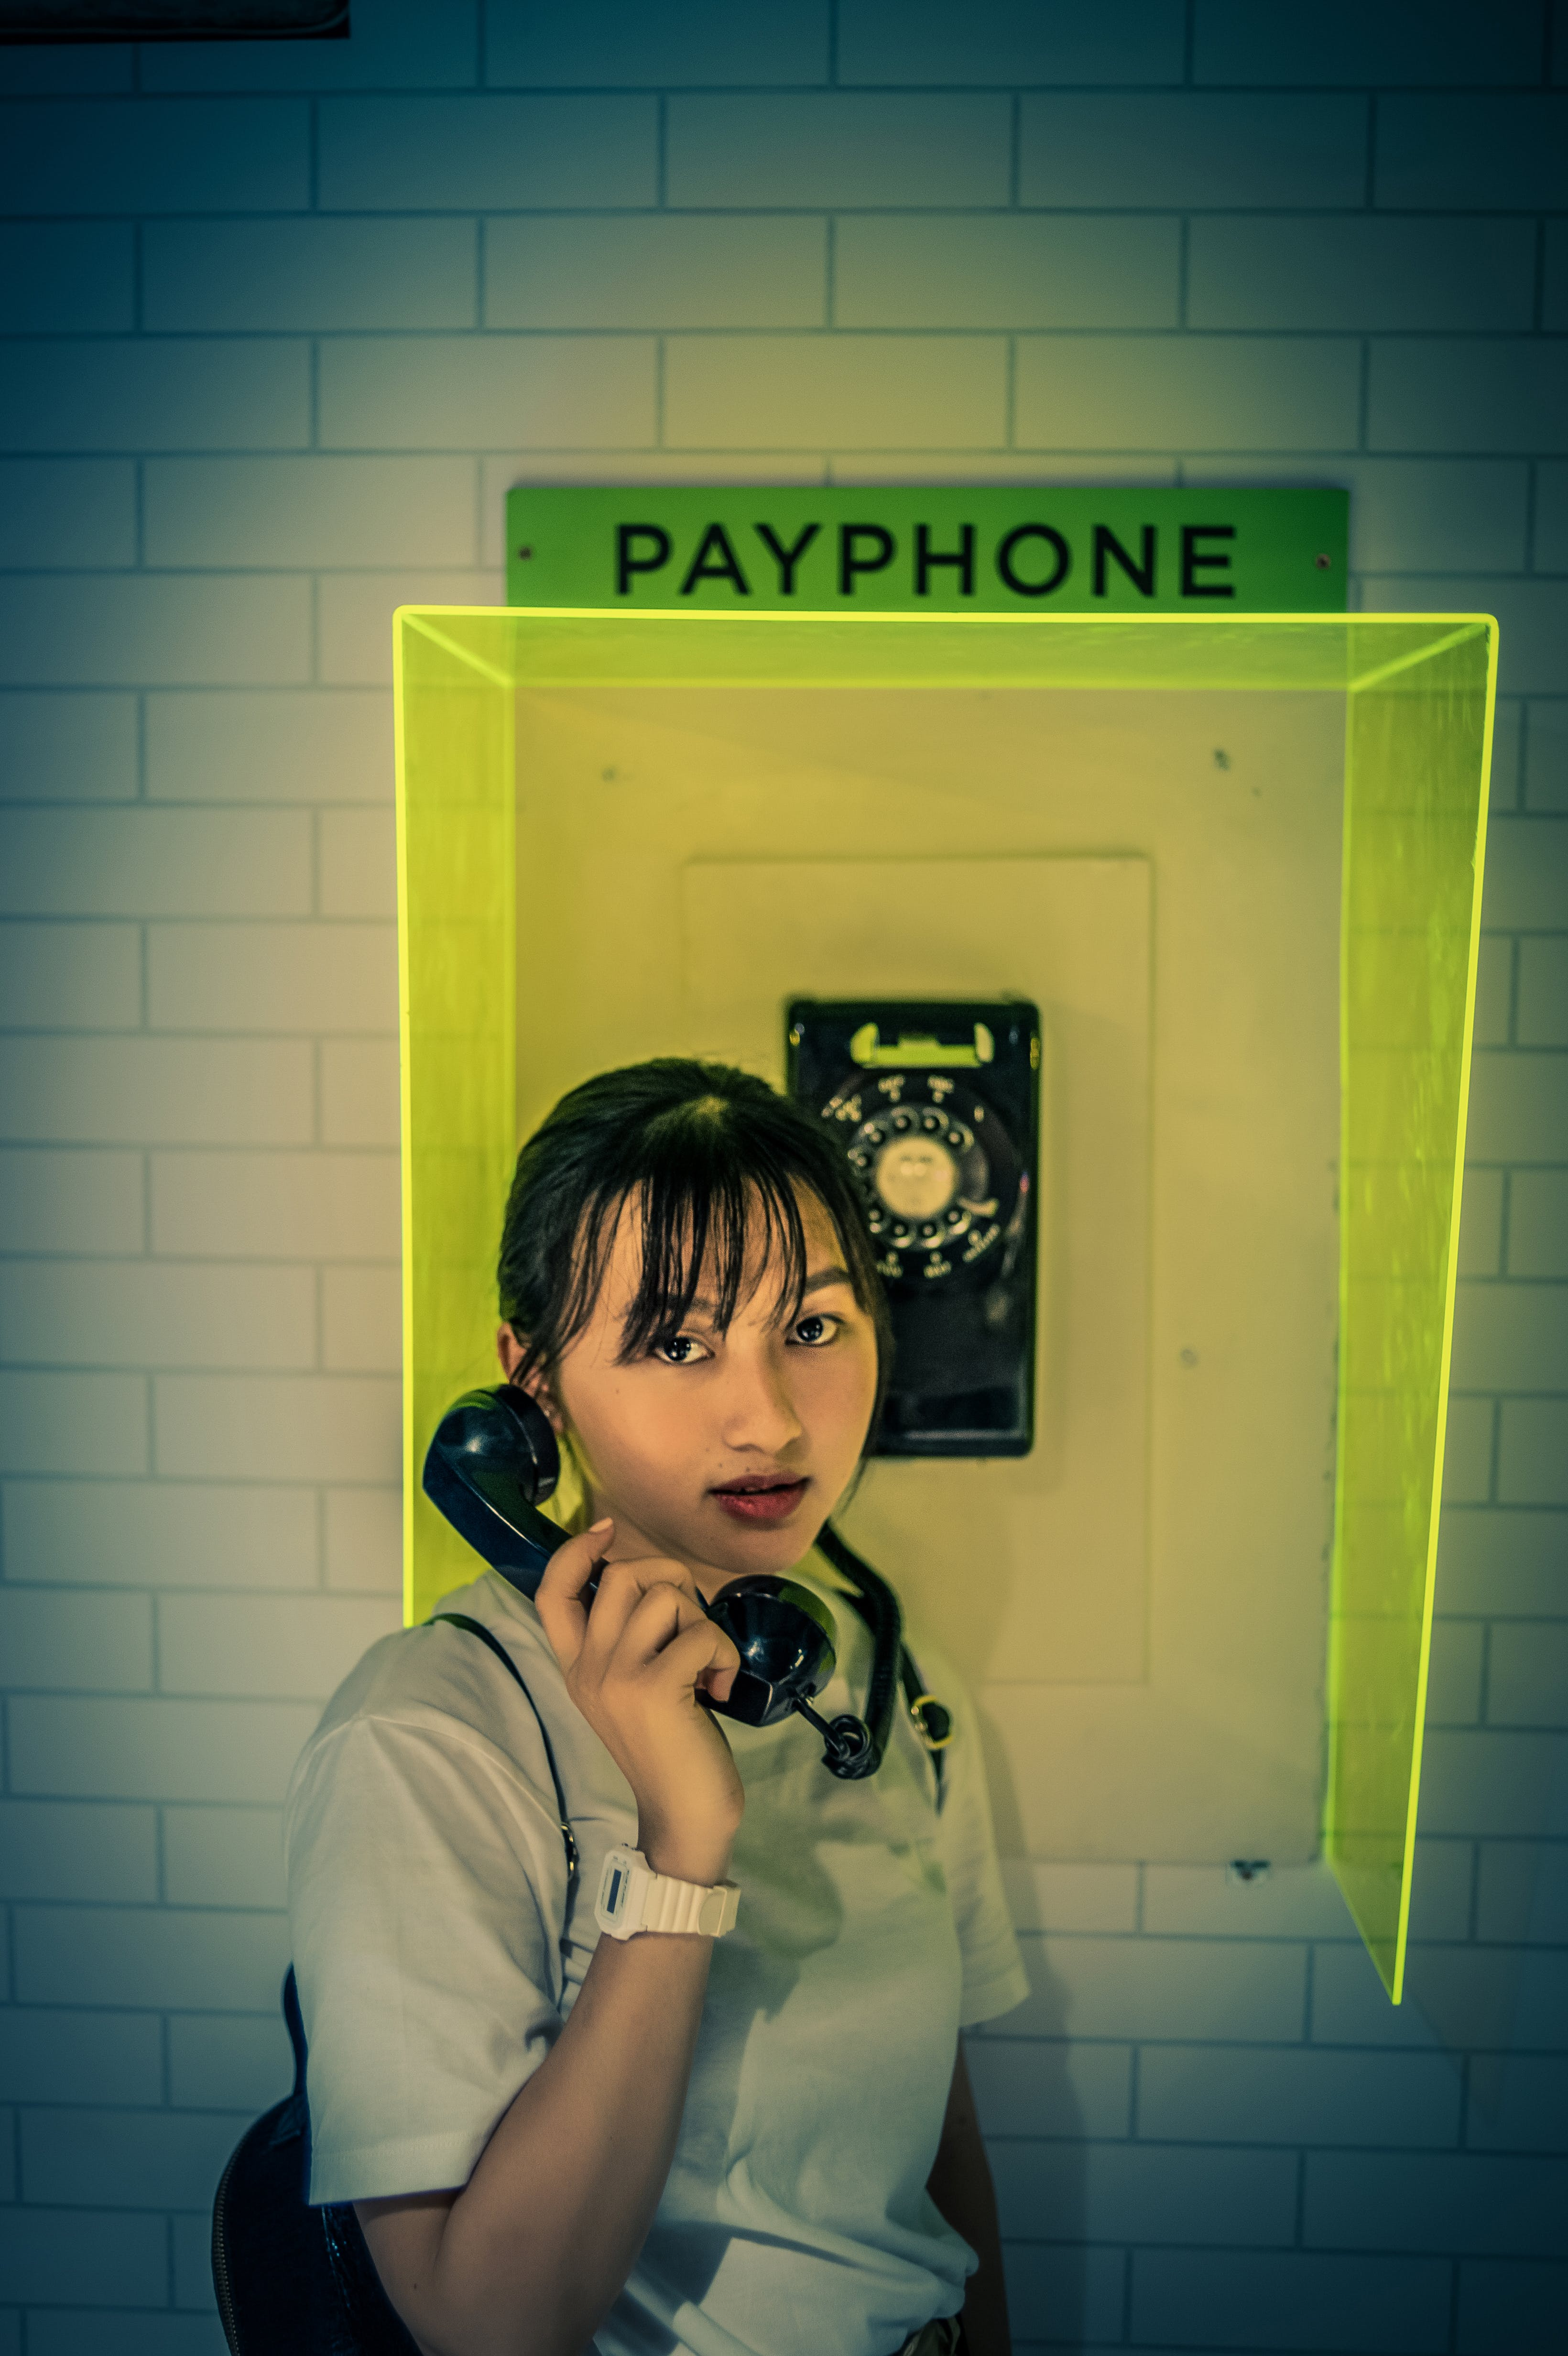 Woman at the Payphone